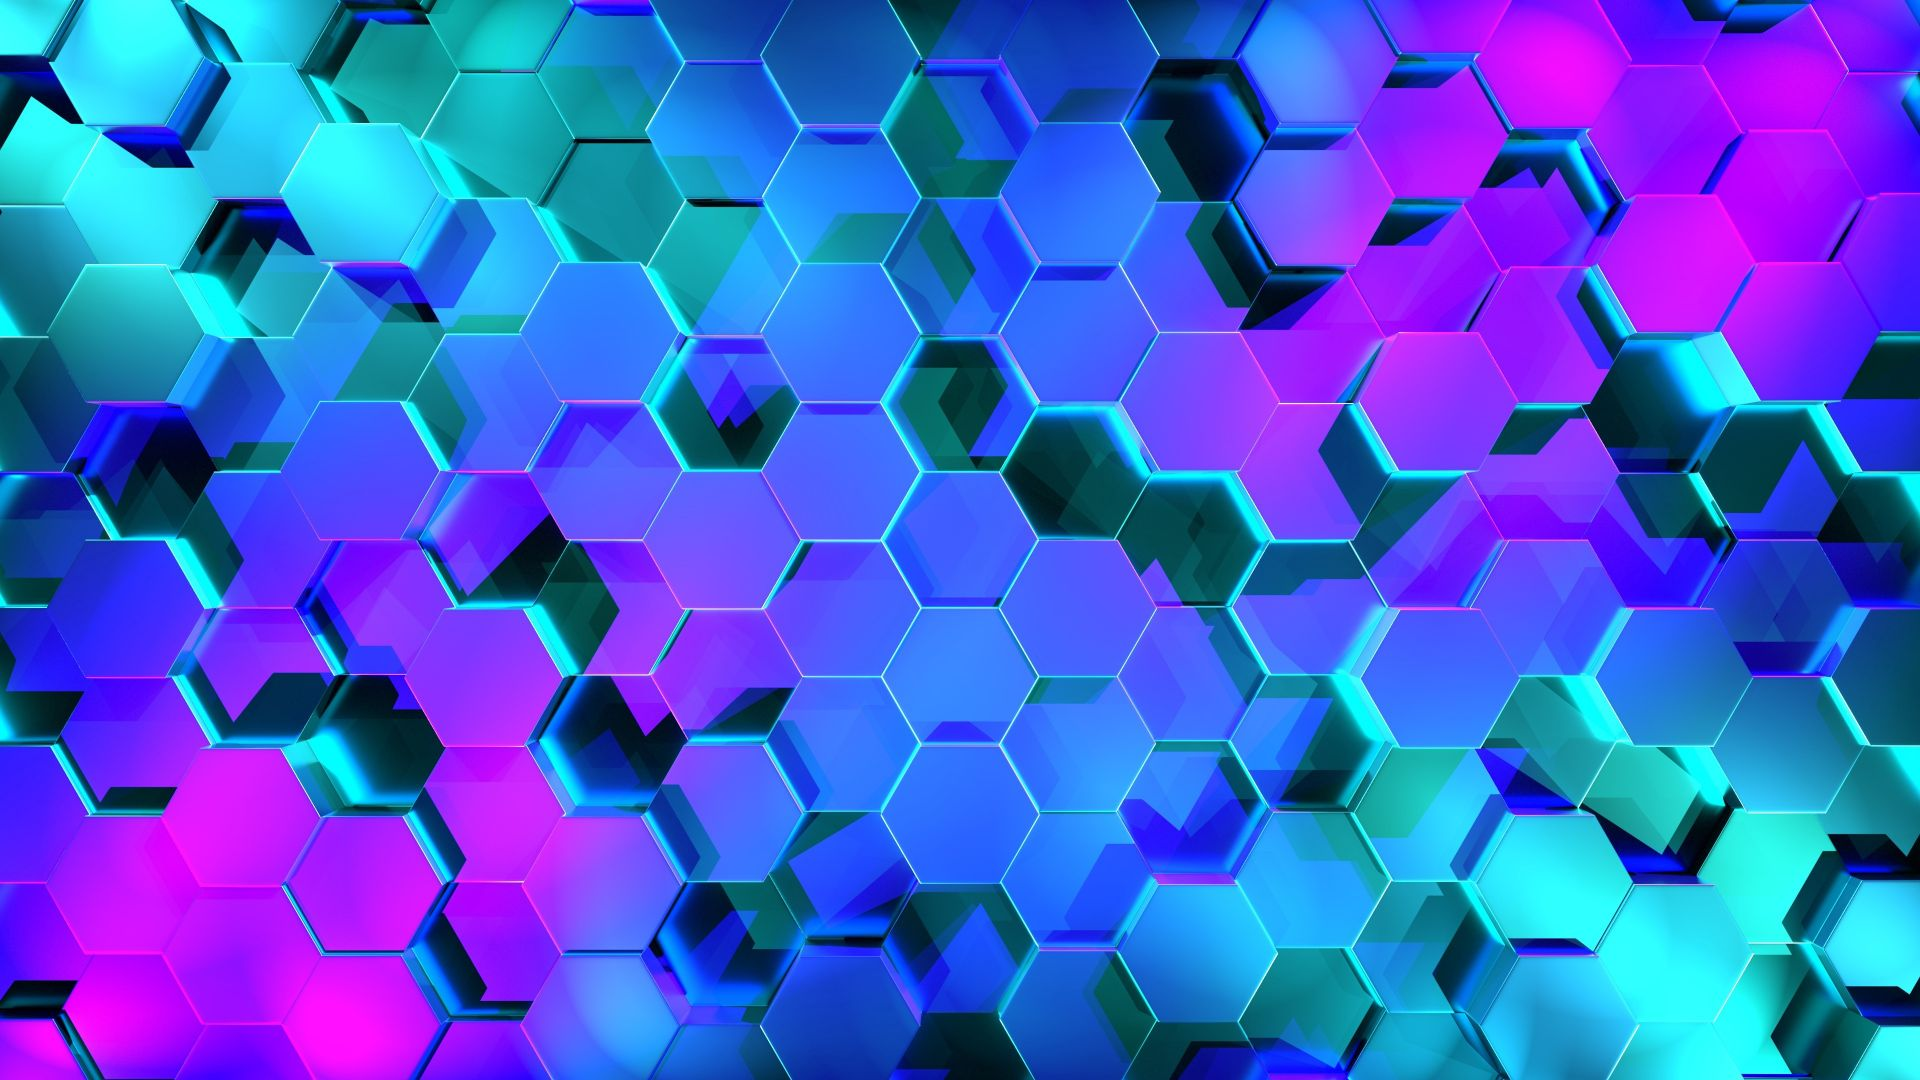 Geometry, Hexagon, Colors, 3D, 4K (horizontal)